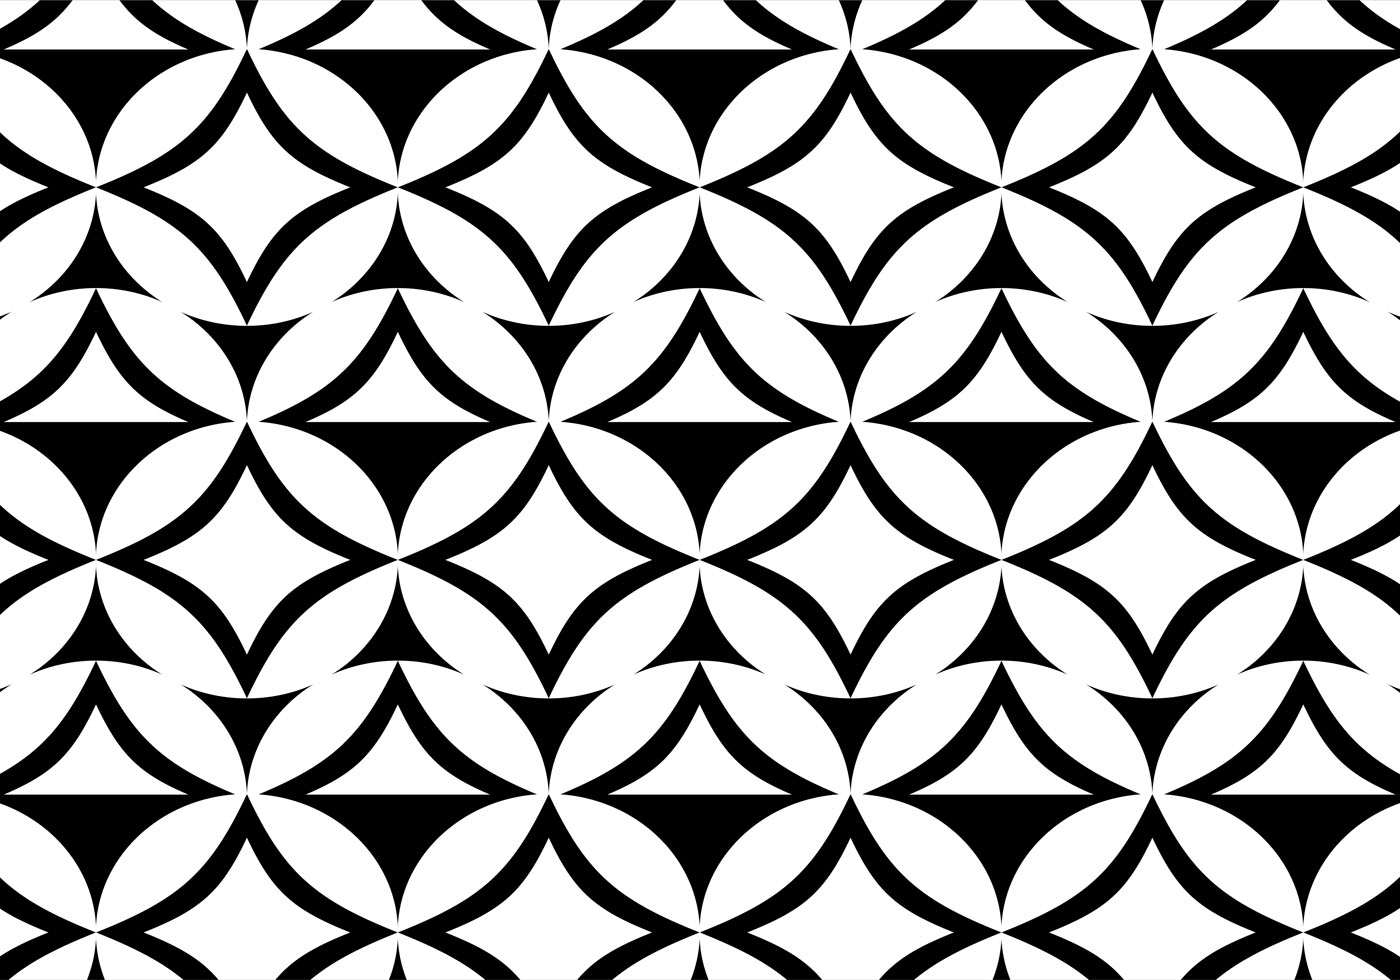 free vector black and white pattern background download free vector art stock graphics images. Black Bedroom Furniture Sets. Home Design Ideas